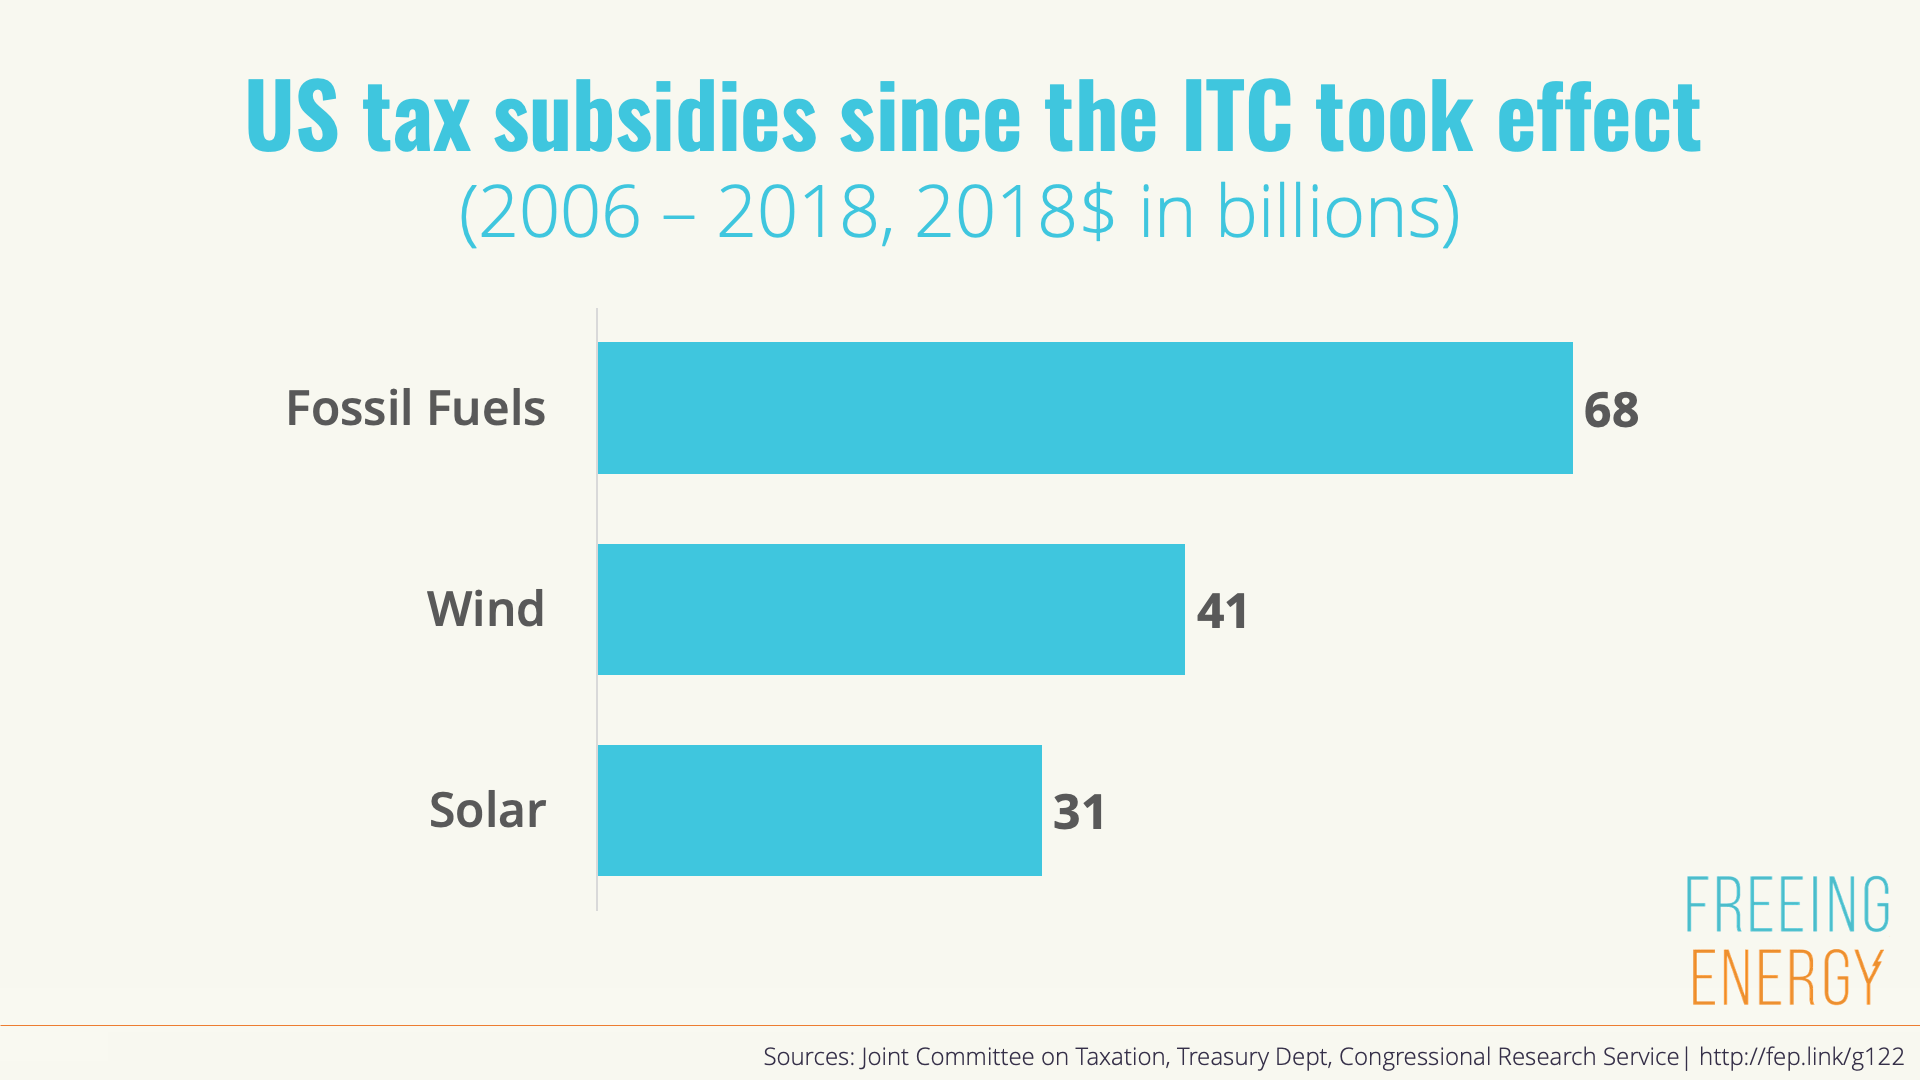 fossil fuels have gotten more tax subsidies than solar and wind since the ITC